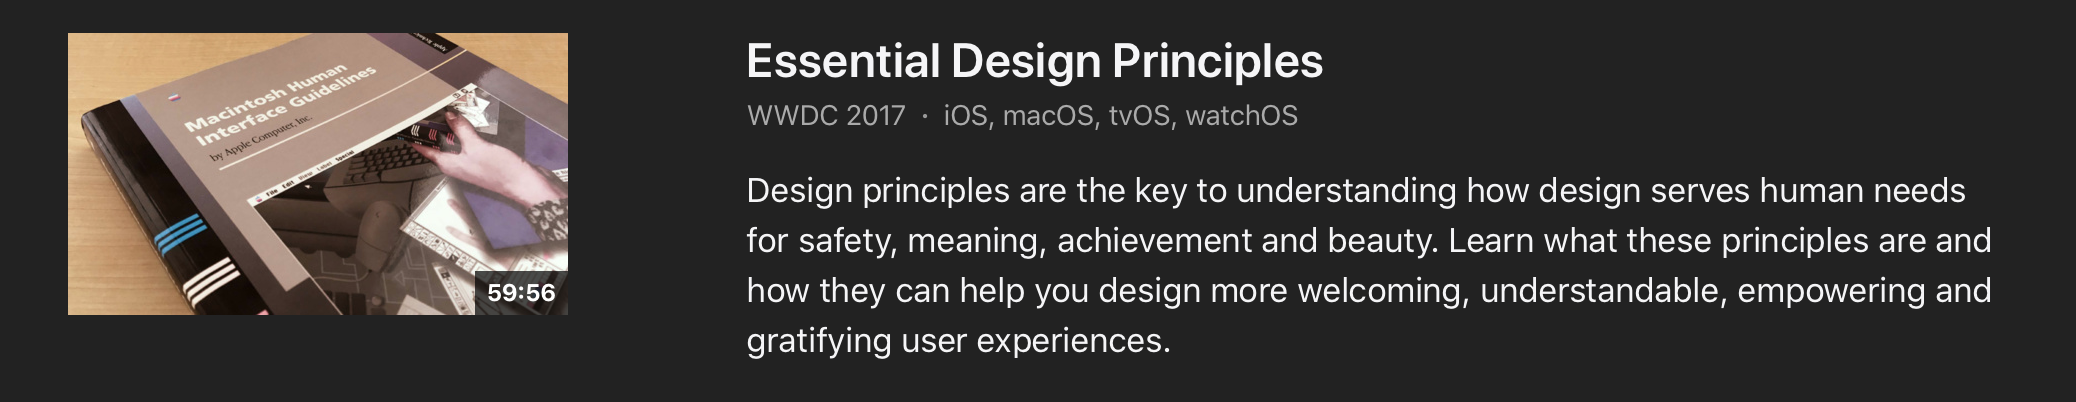 Essential Design Principles.png